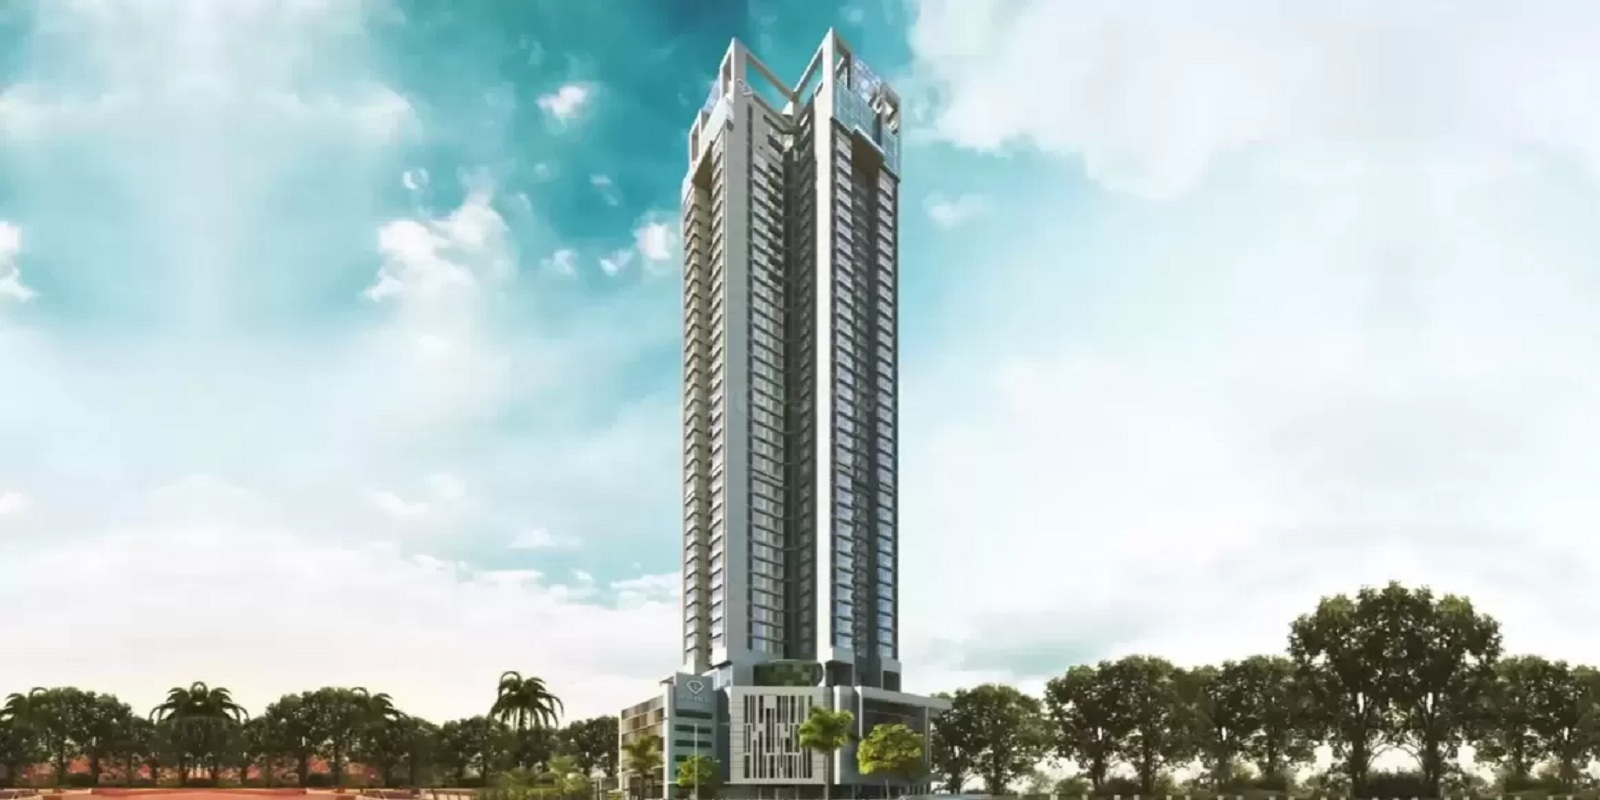 a and o realty f residences malad project large image2